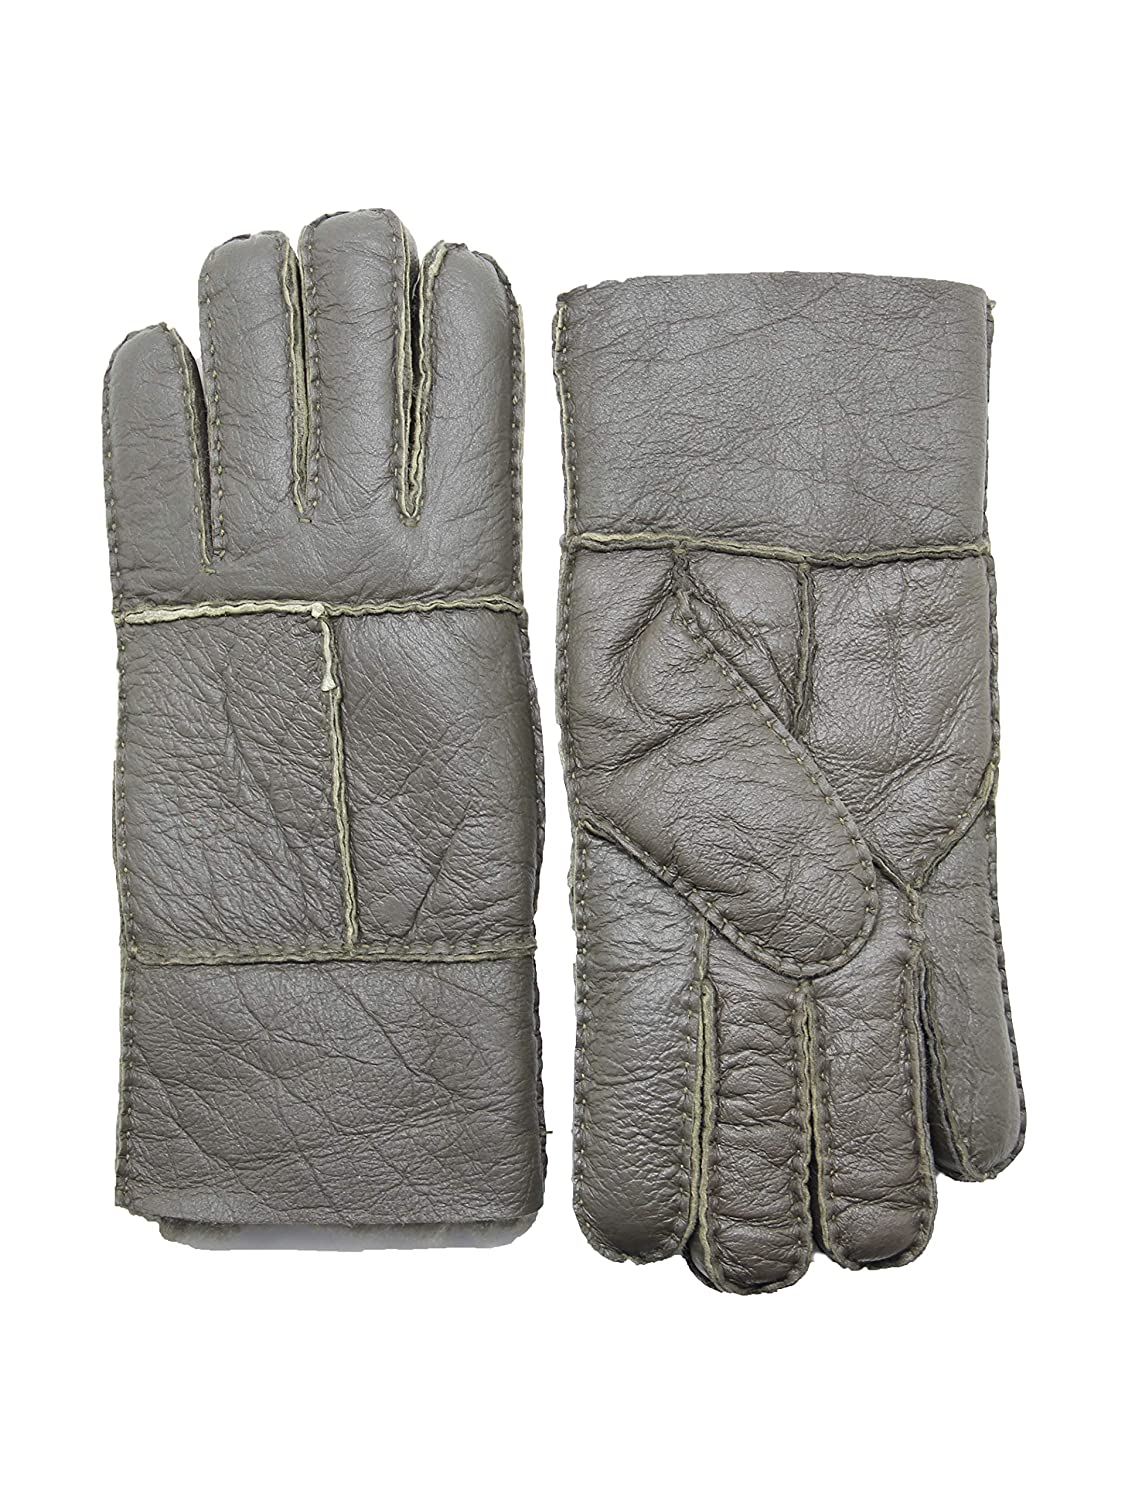 YISEVEN Men's Rugged Shearling Sheepskin Gloves Charm Leather Fashion Company